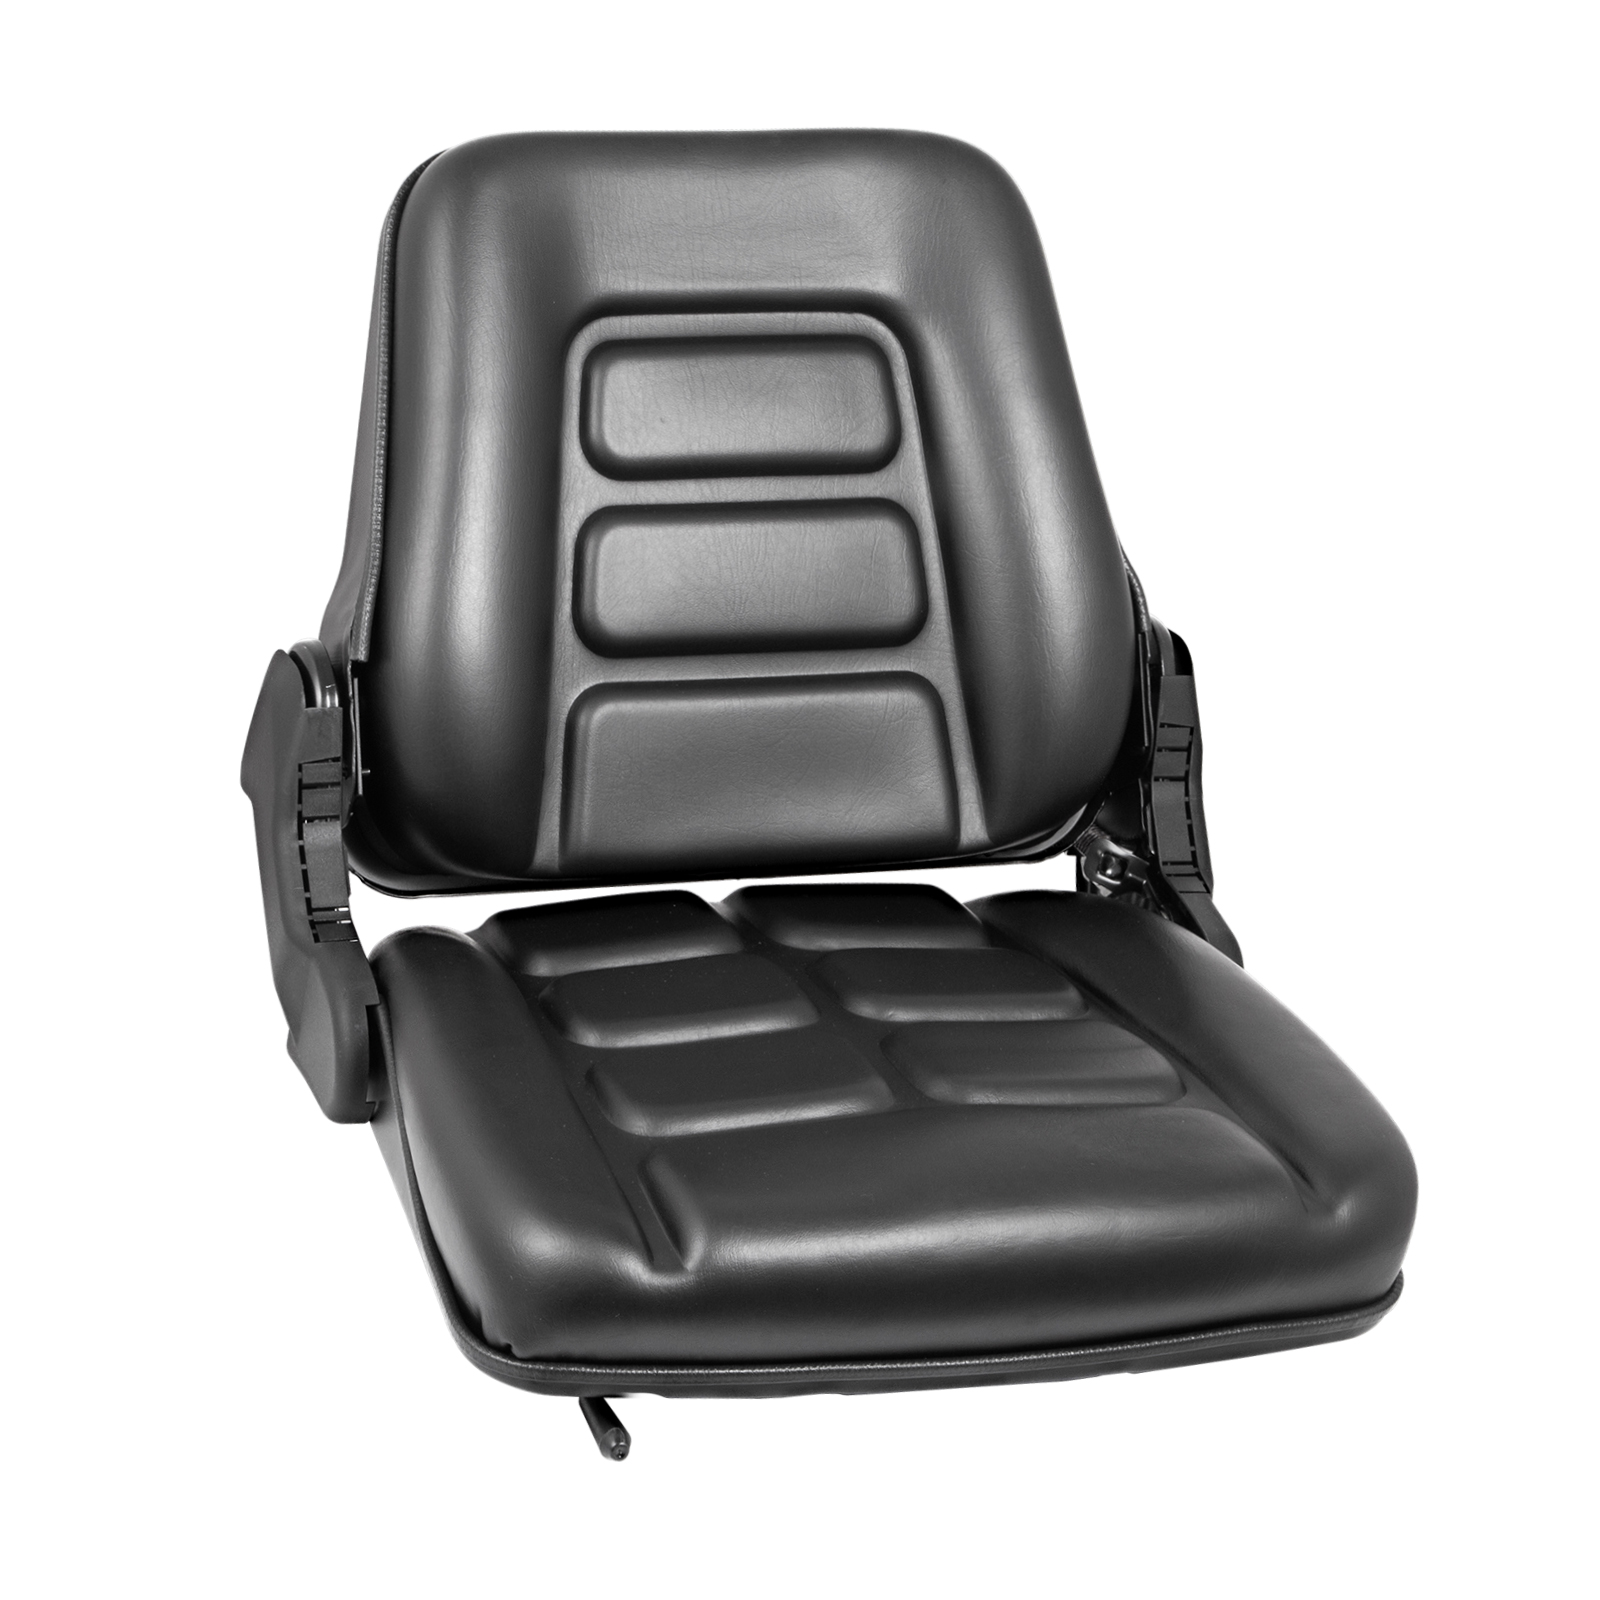 VEVOR Universal Replacement Seat Waterproof High Quality PVC for Heavy Mechanical Seat Forklift Dozer Mower Tractor Excavator